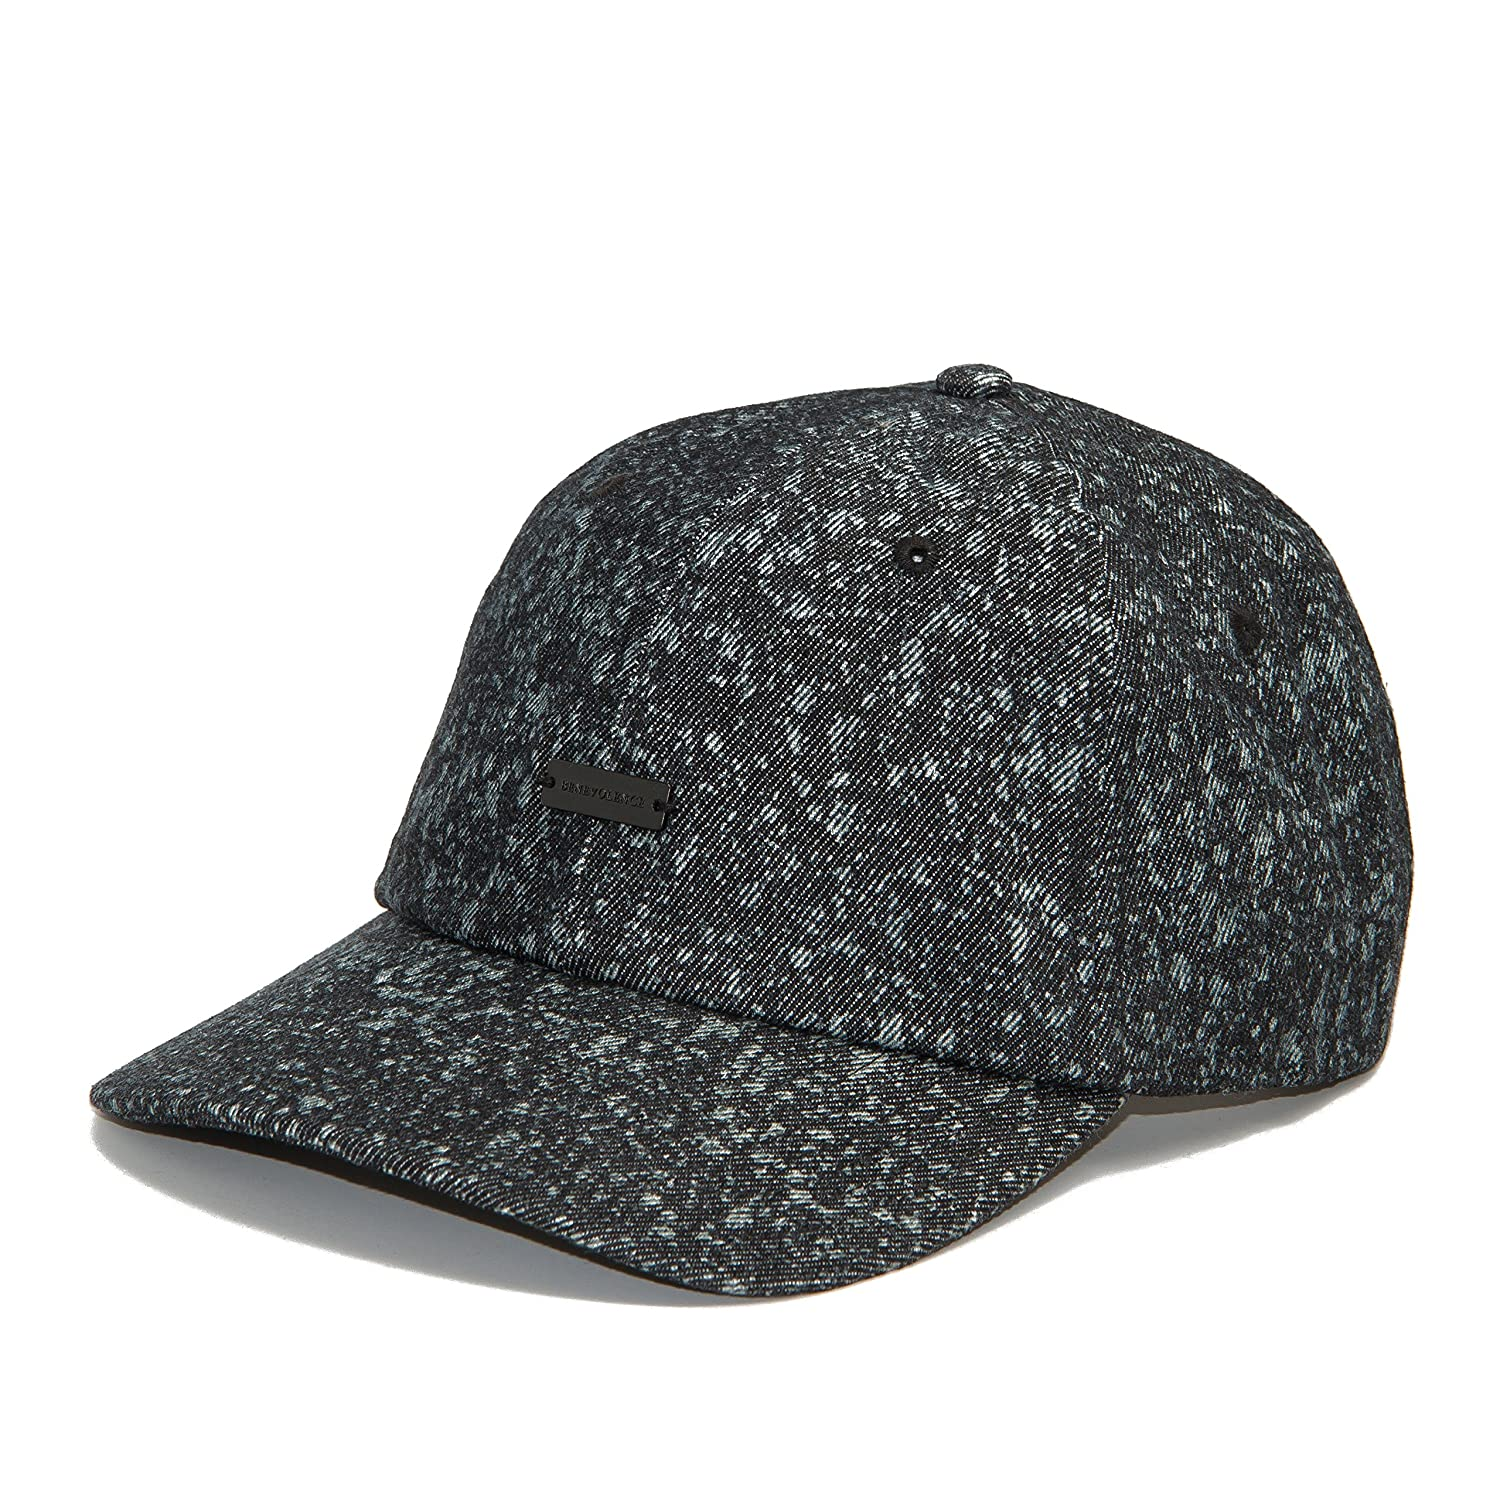 5b35aa7600d Amazon.com   BLEACHED 100% COTTON LOOSE DAD CAP BLACK   Sports   Outdoors